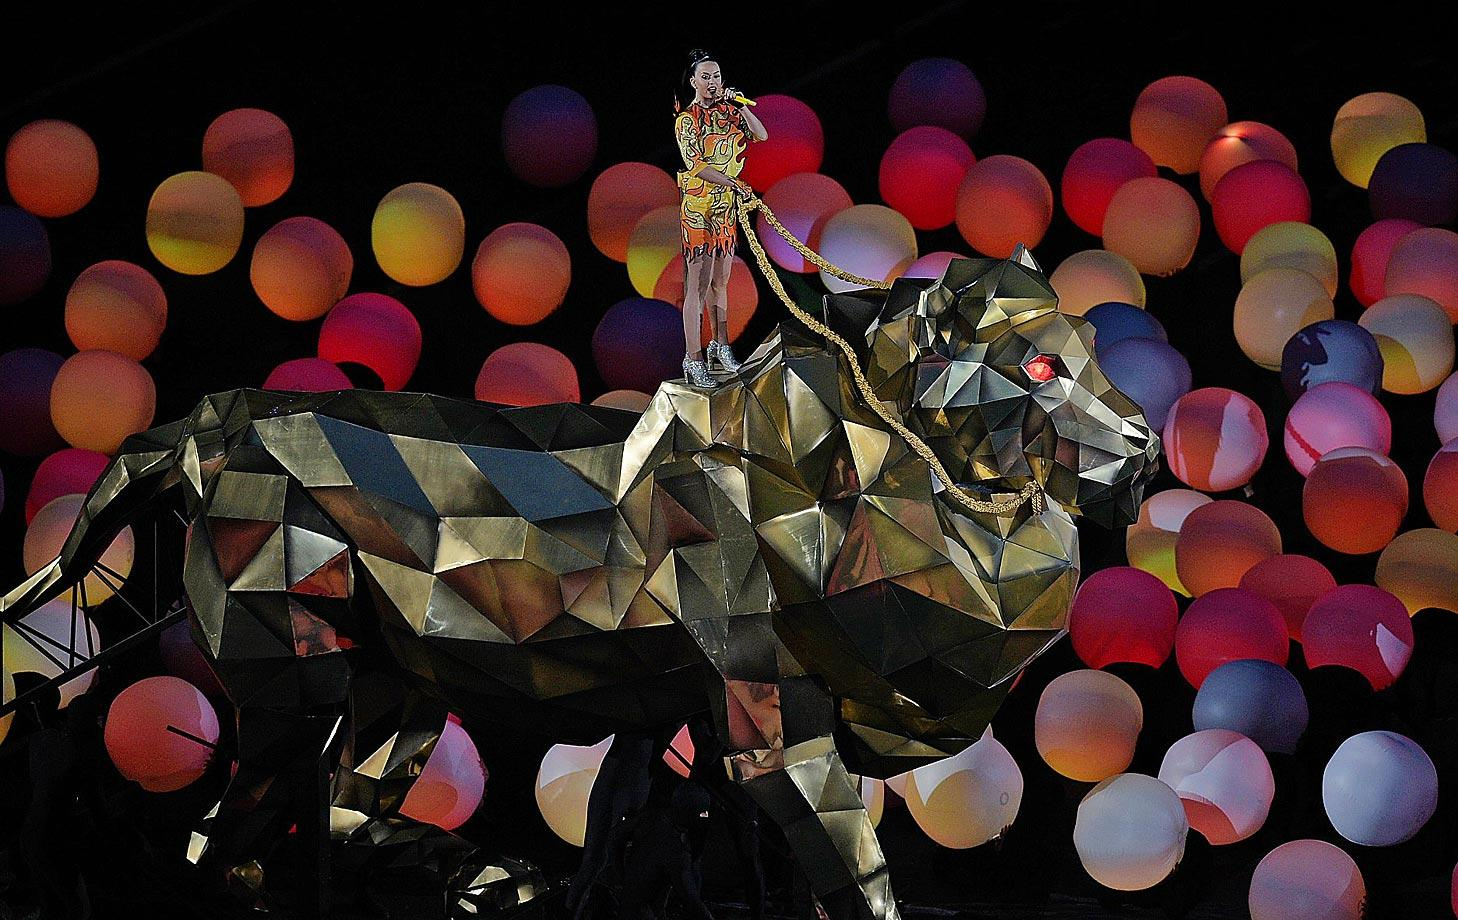 Katy Perry impressed the fans during the halftime show.